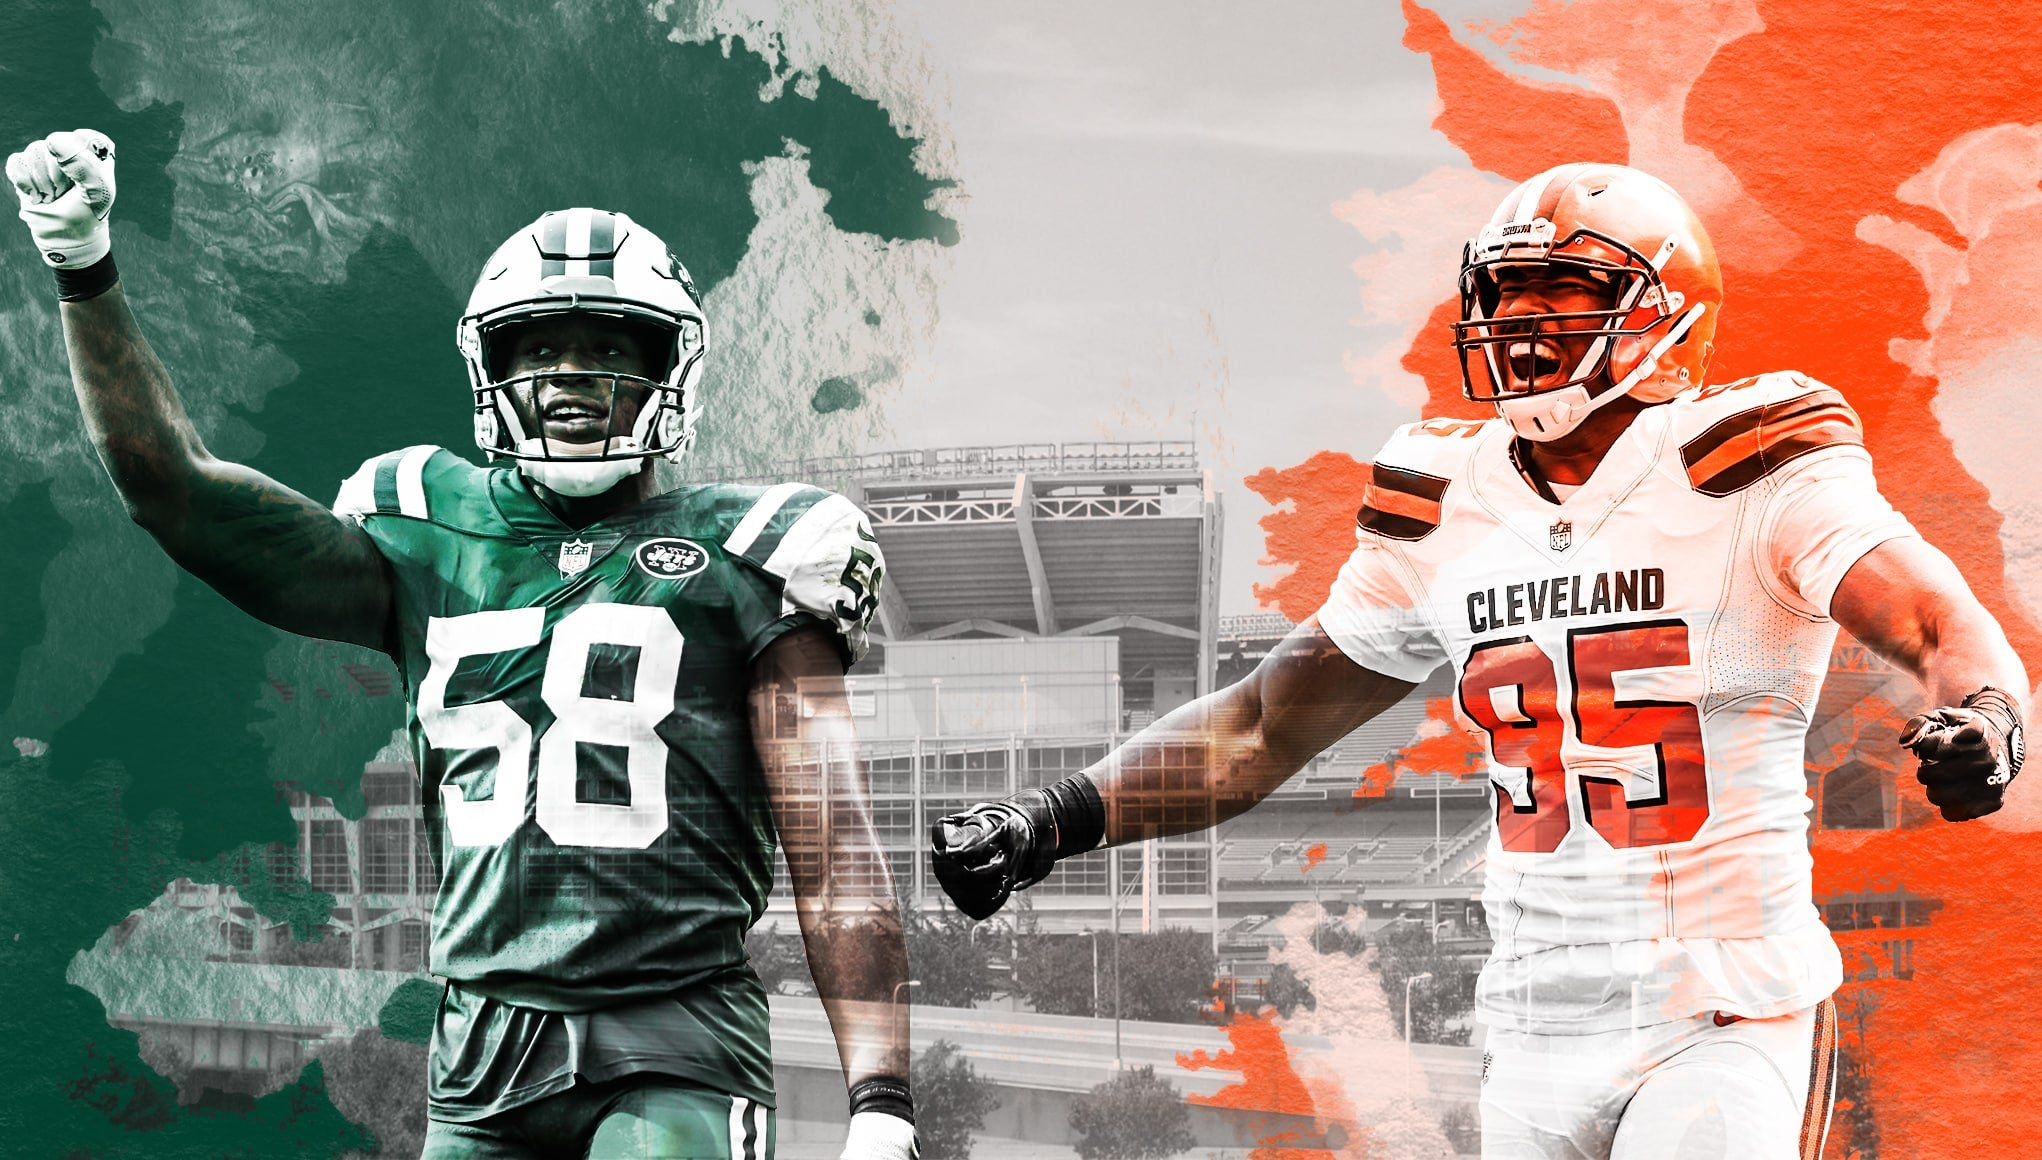 Browns vs. Jets NFL Predictions, Betting Odds and Online